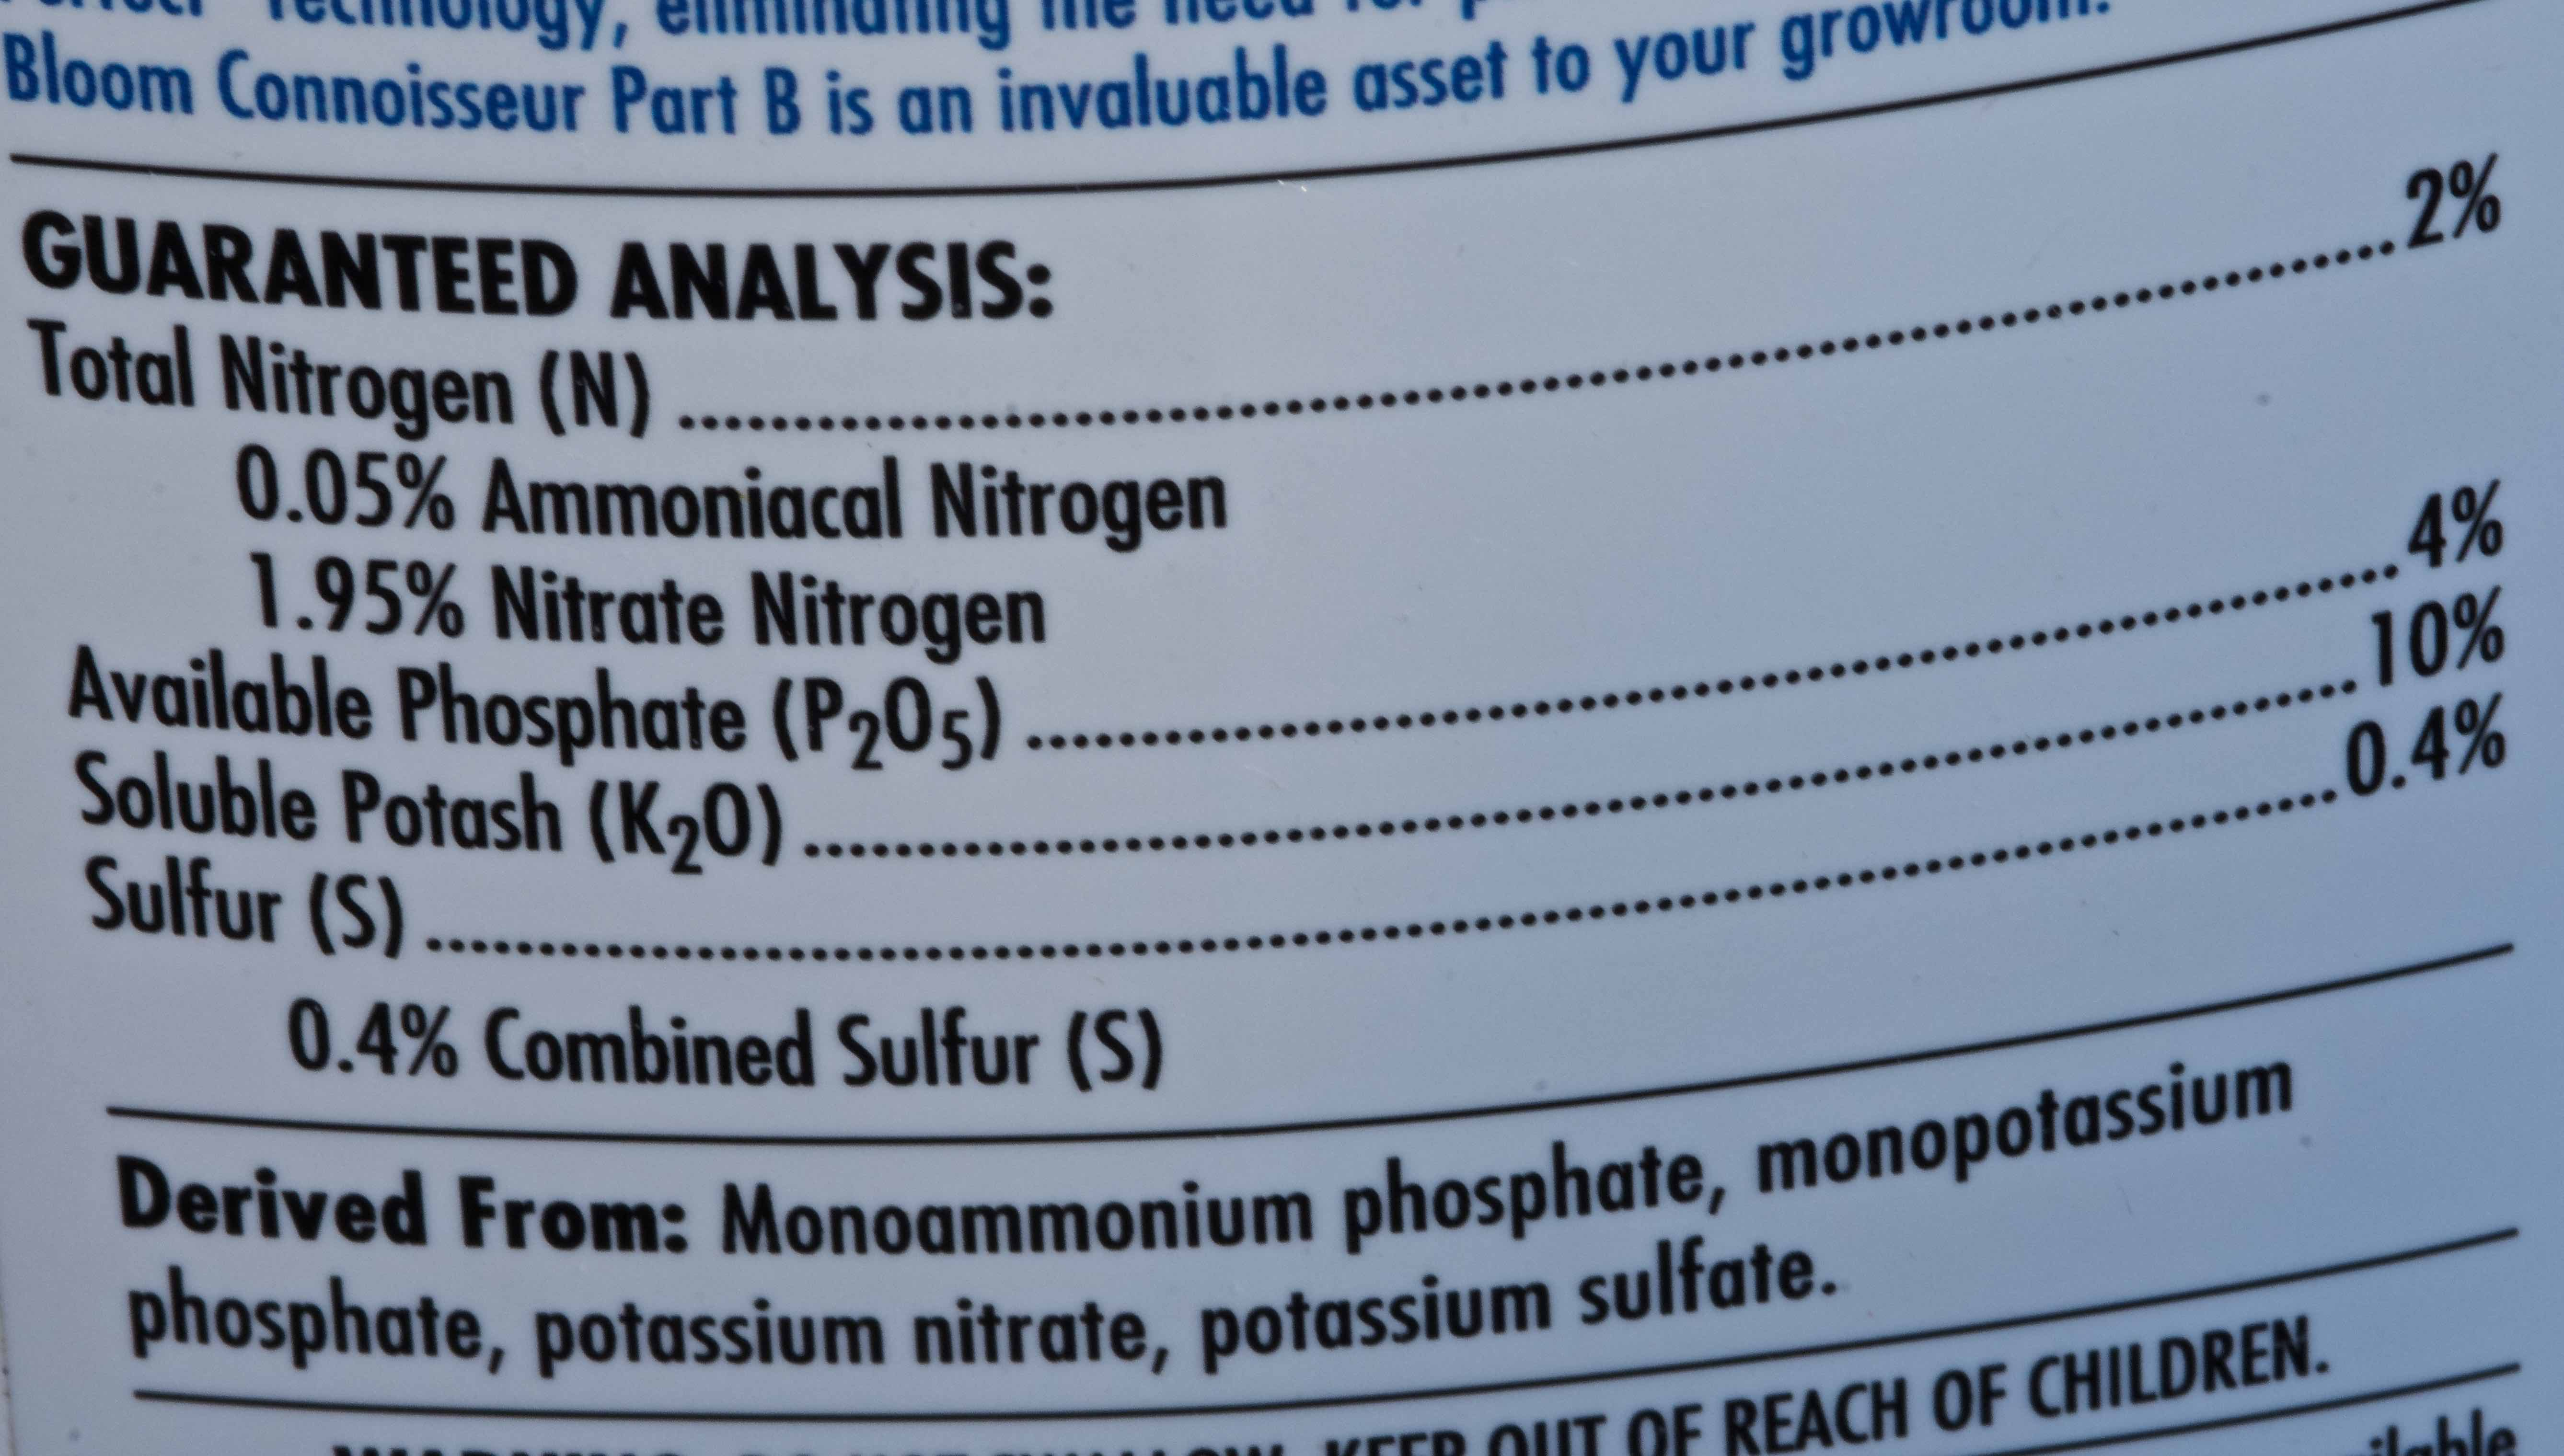 The ingredients label from Connoisseur Part B bloom phase hydroponics base nutrients.